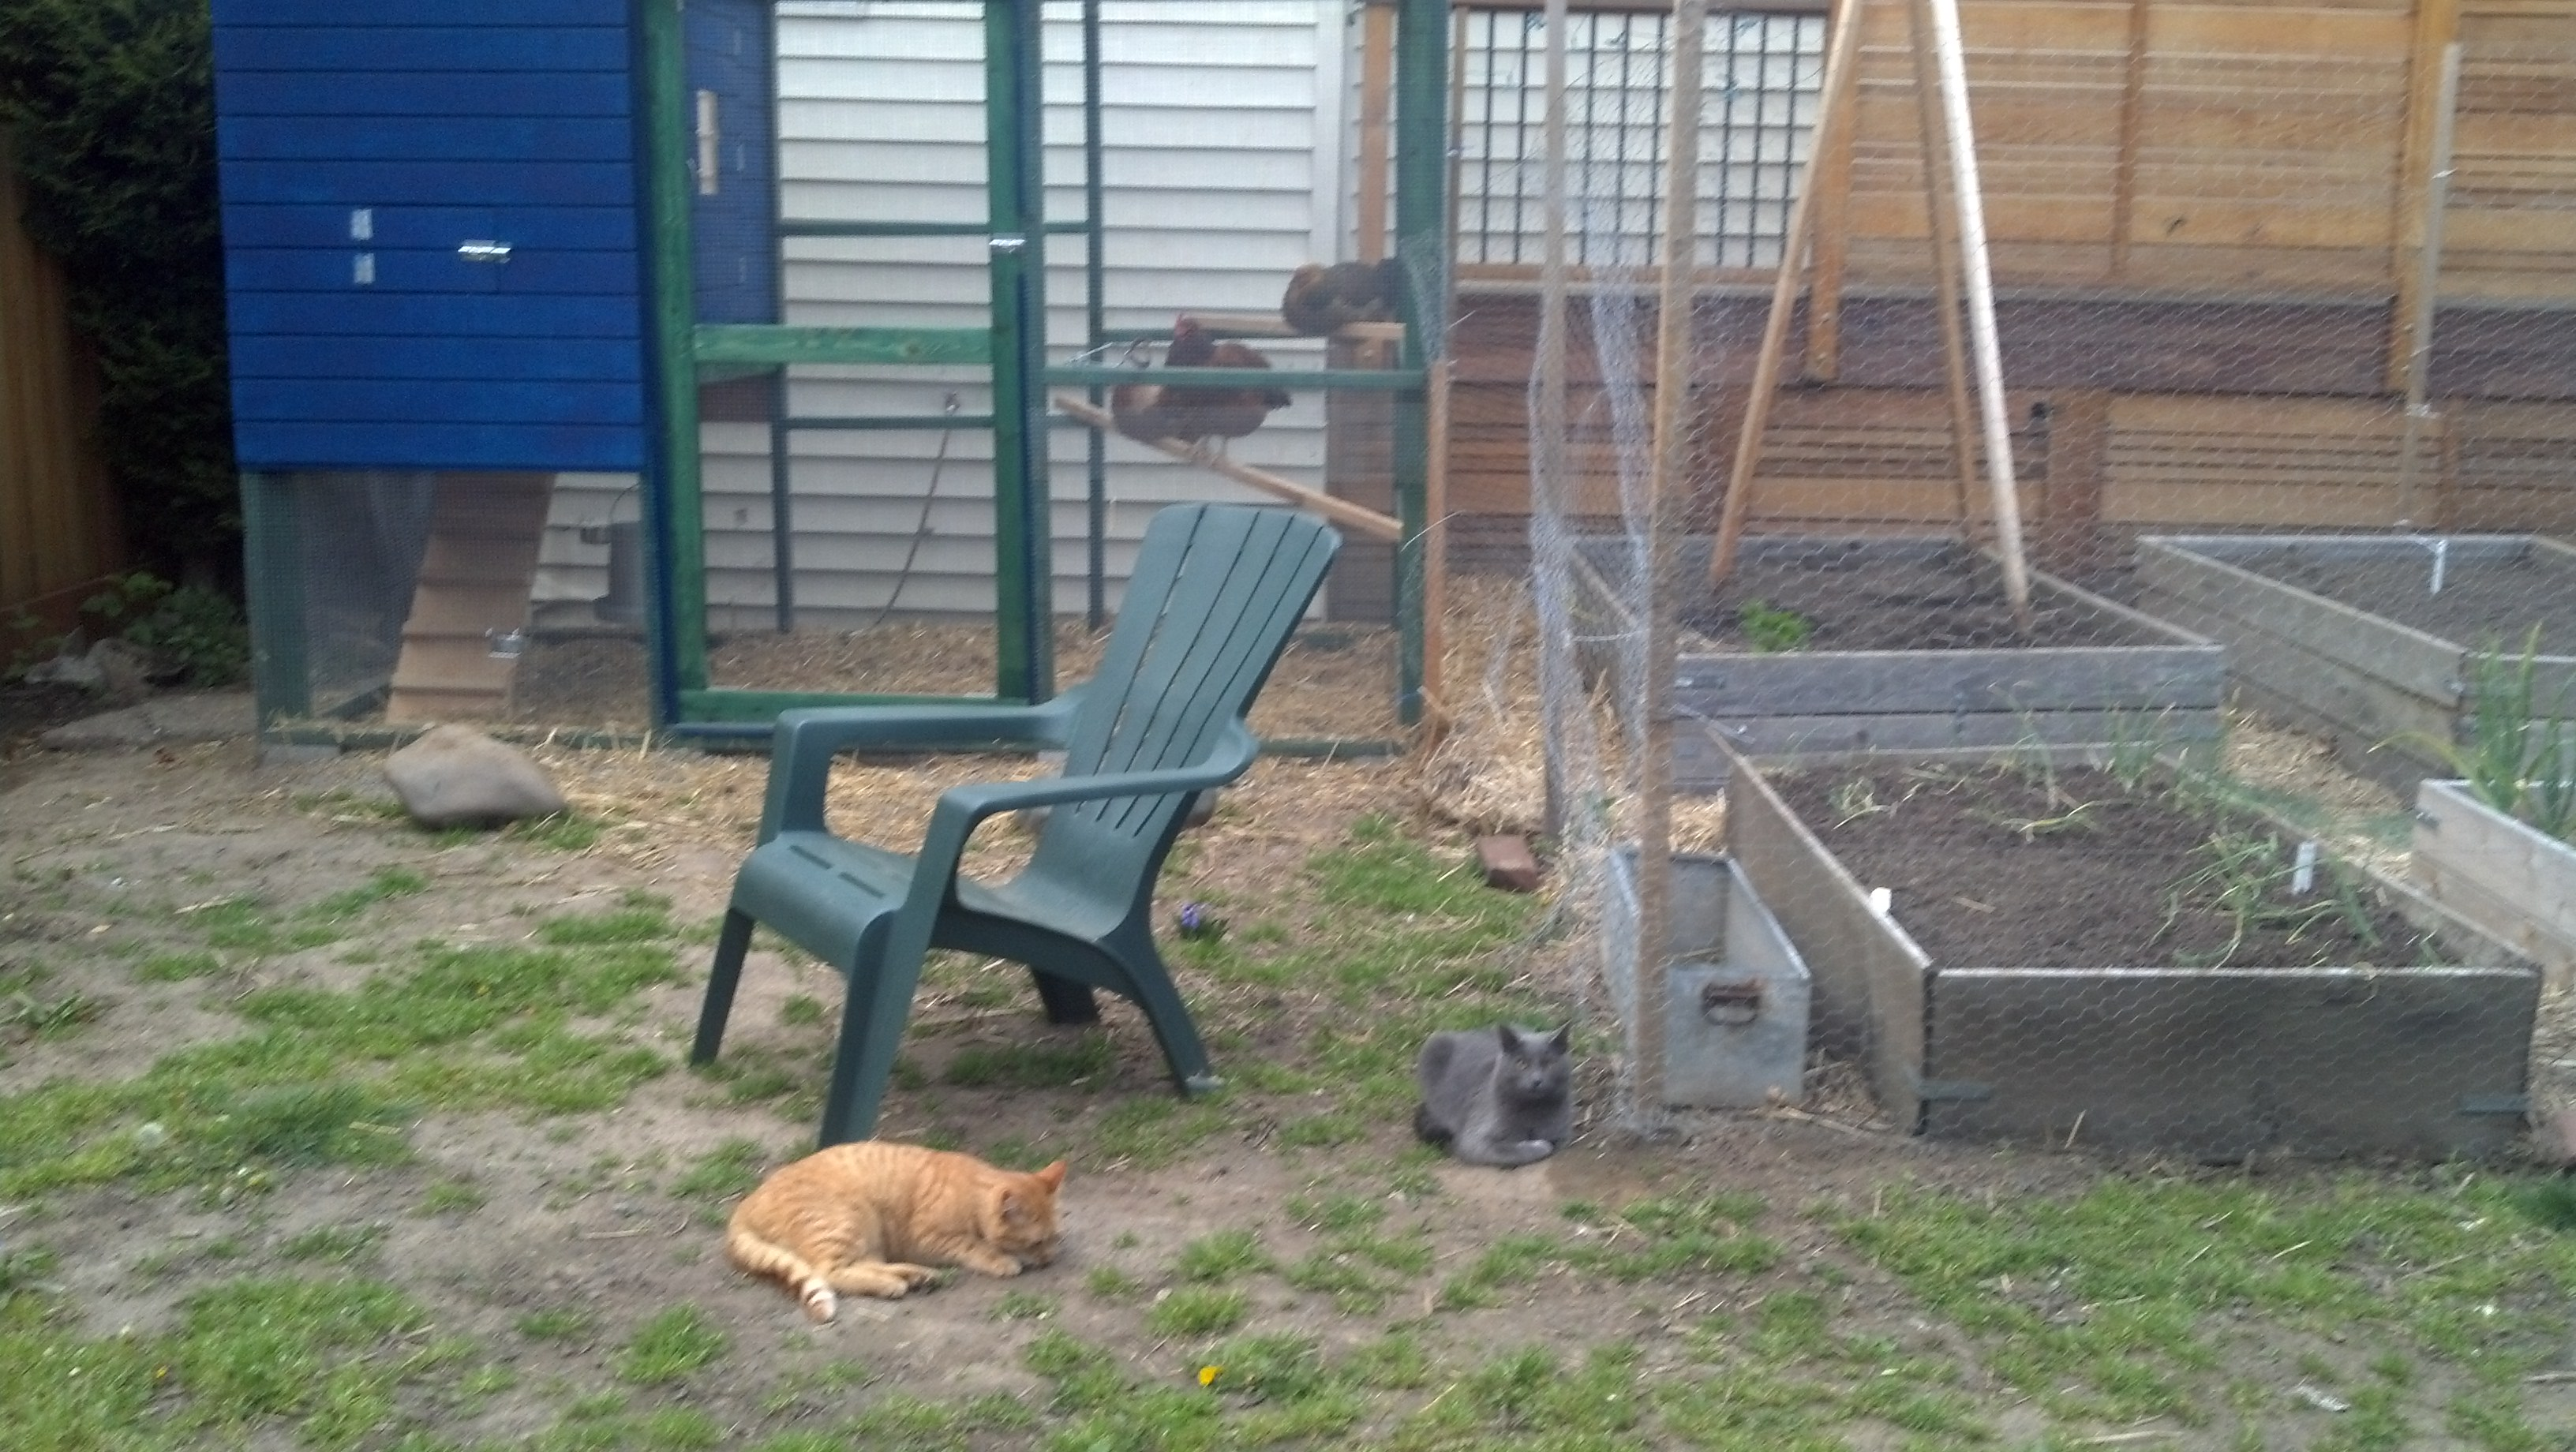 this is the front of the brand new coop with our two found kitties, biff and shadow whom we tamed as feral kittens. they hang with chickens!